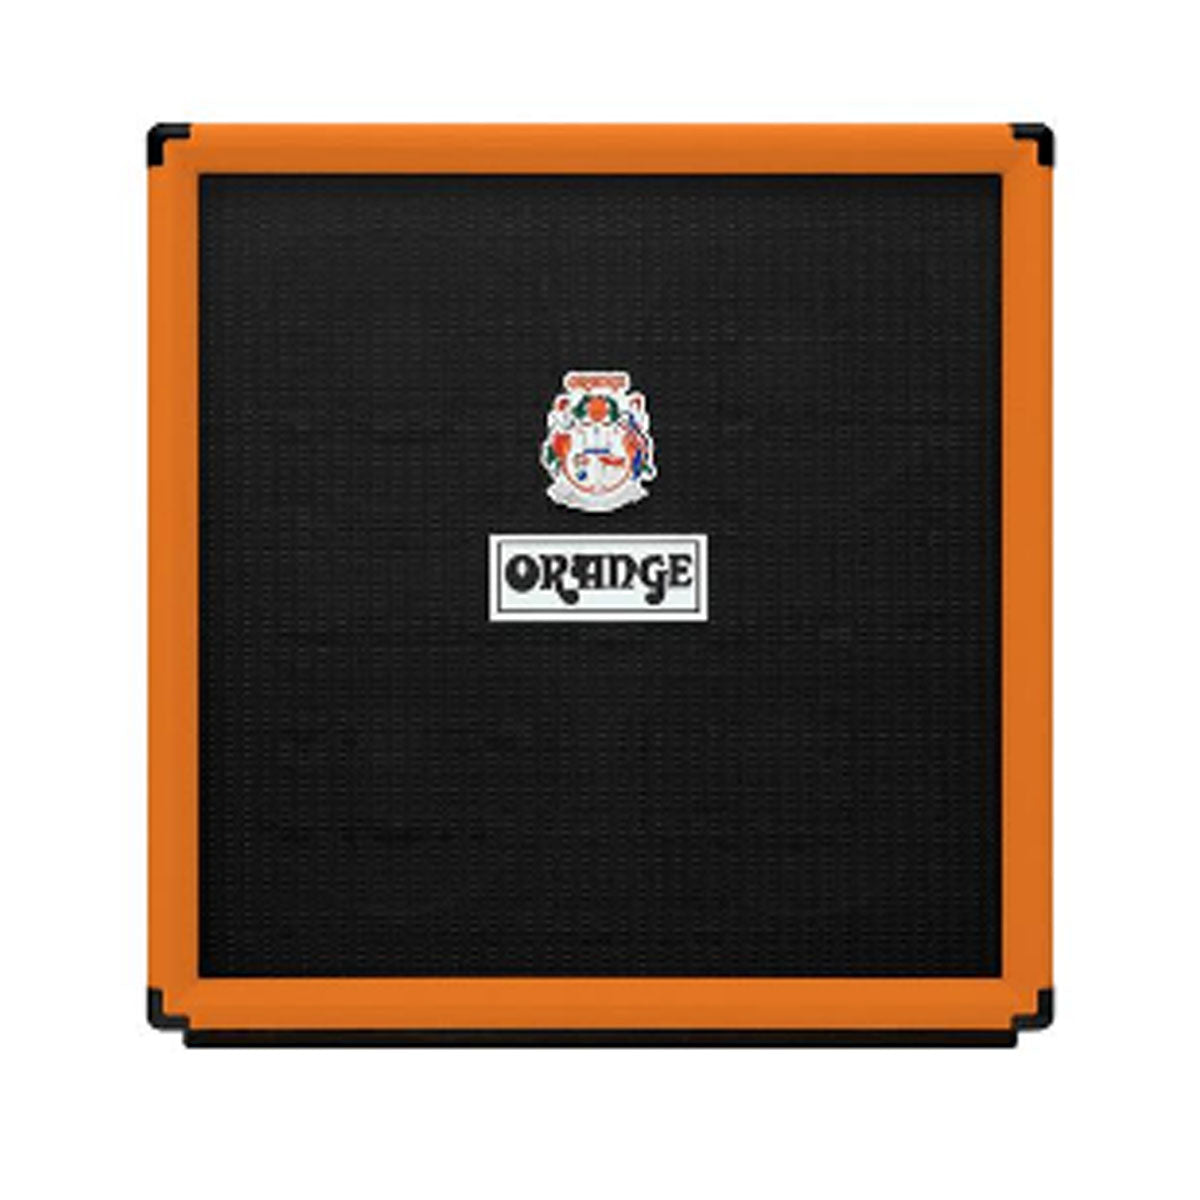 Orange OBC410 Bass Guitar Cabinet 4x10inch Speaker Cab